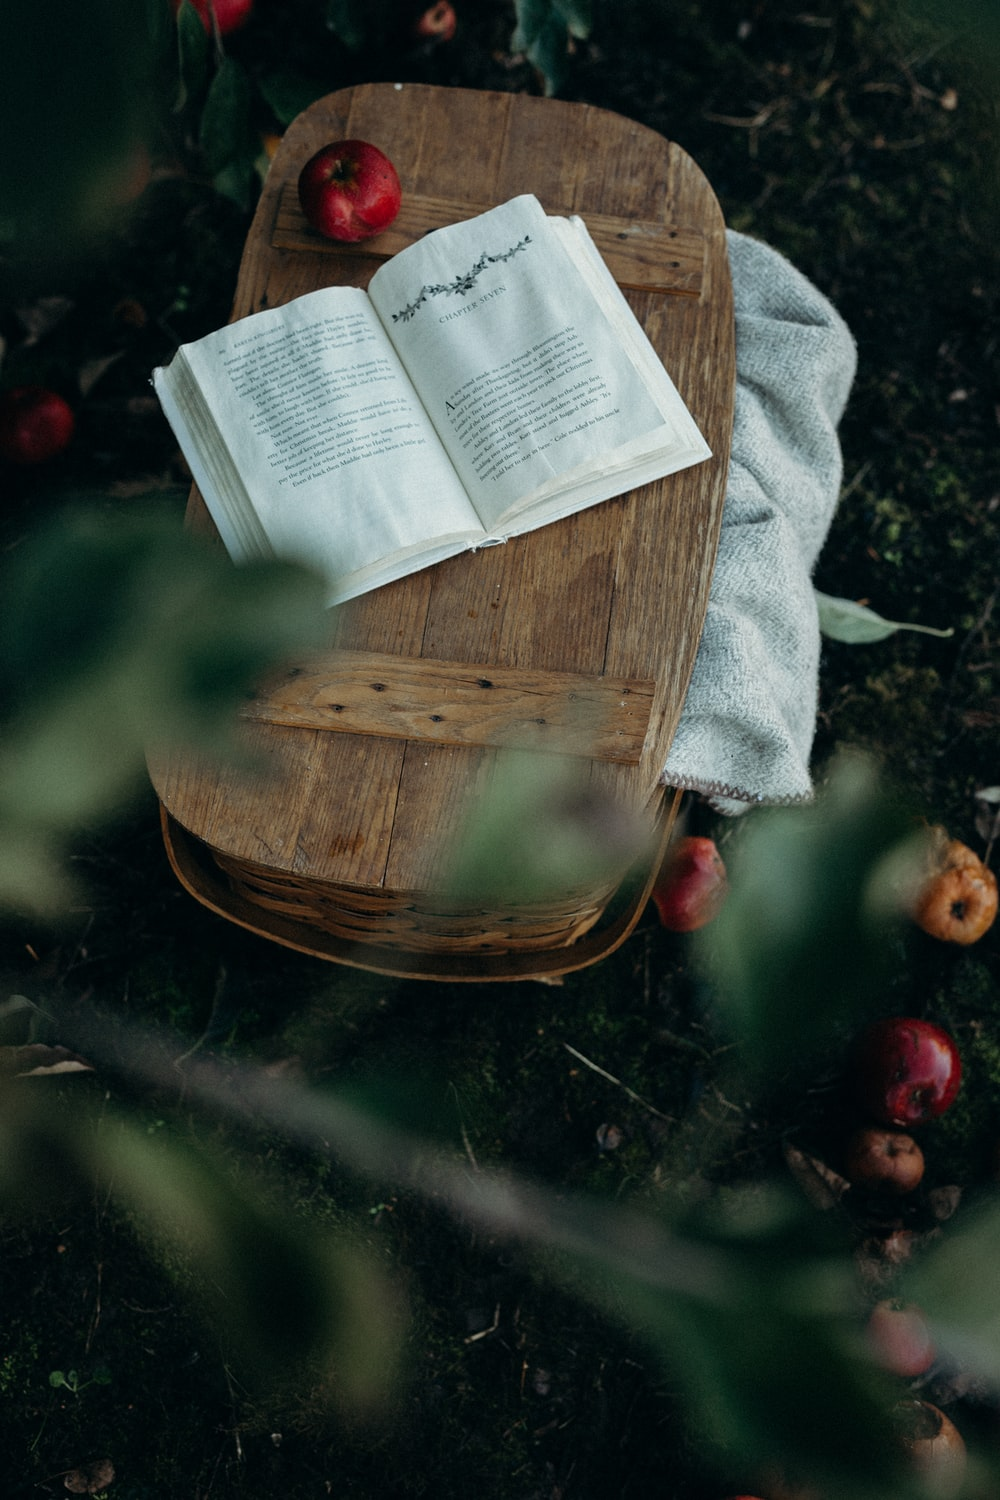 white book on top of brown picnic basket